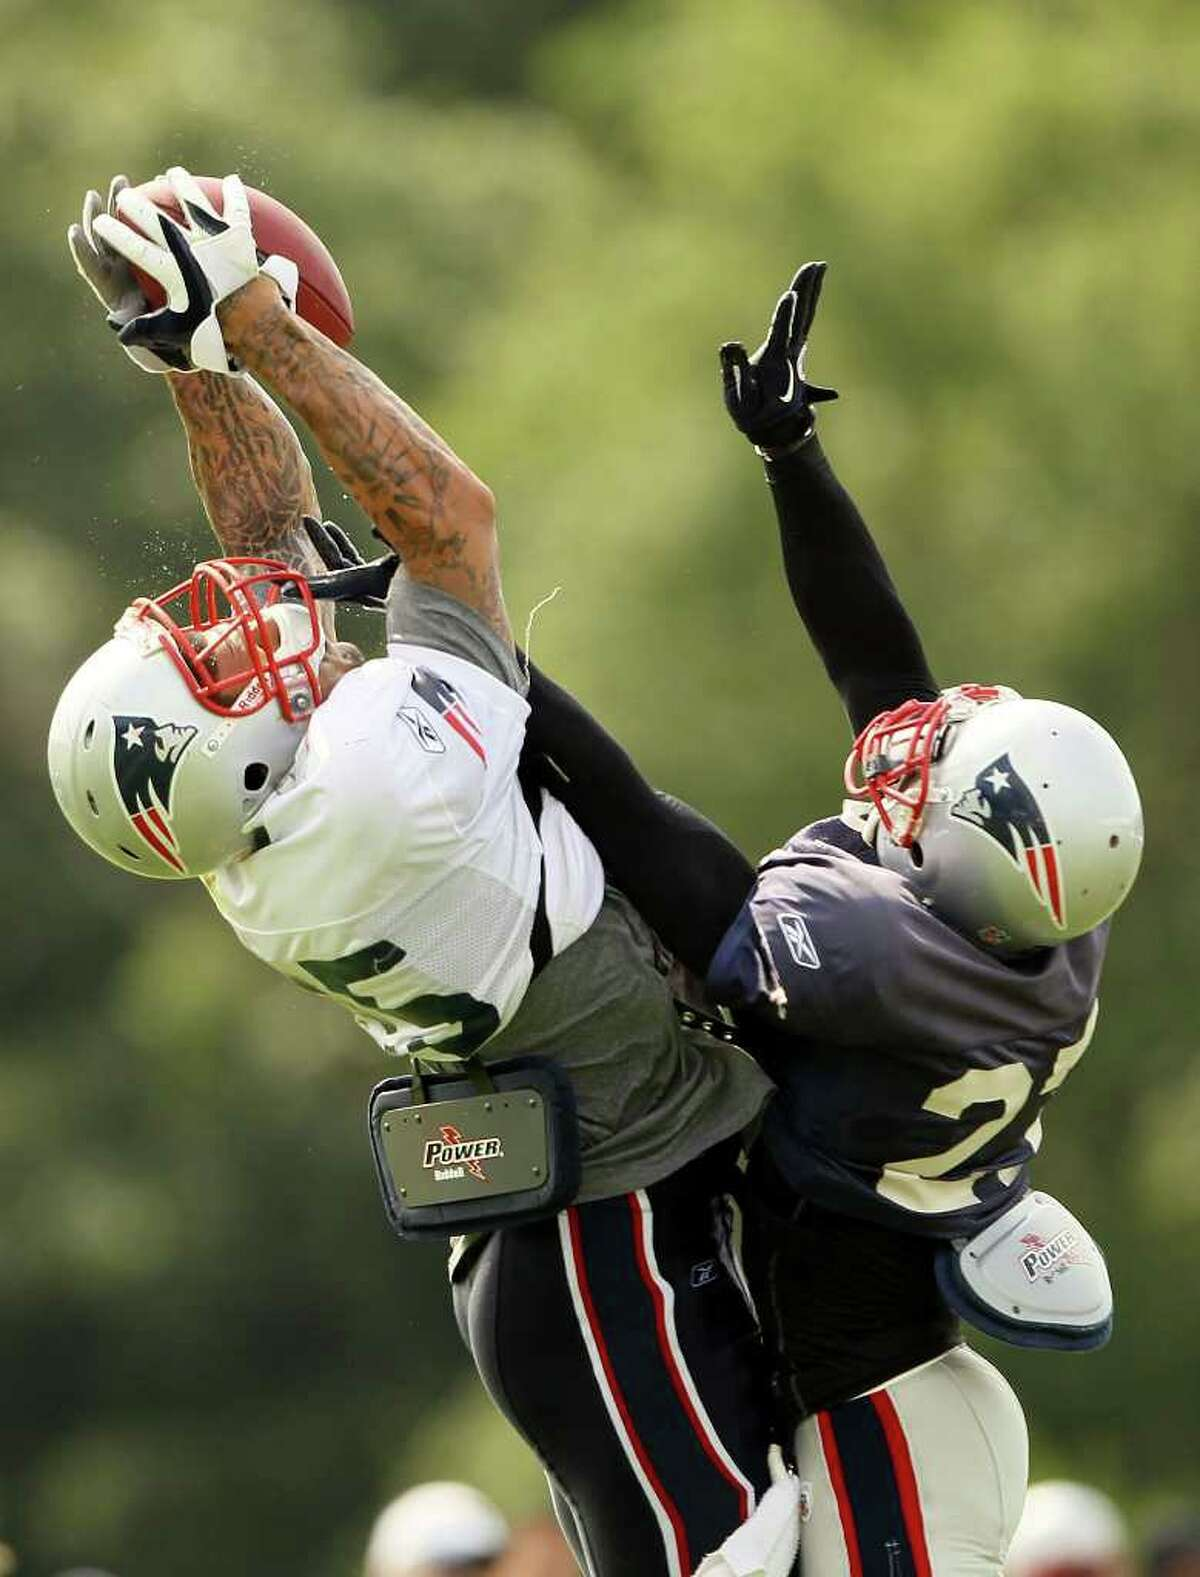 FOXBORO, MA - AUGUST 02: Aaron Hernandez #85 tries to hang on to the ball as Kyle Arrington #27 breaks up the pass during the New England Patriots training camp on August 2, 2010 at Gillette Stadium in Foxboro, Massachusetts. (Photo by Elsa/Getty Images) *** Local Caption *** Aaron Hernandez; Kyle Arrington